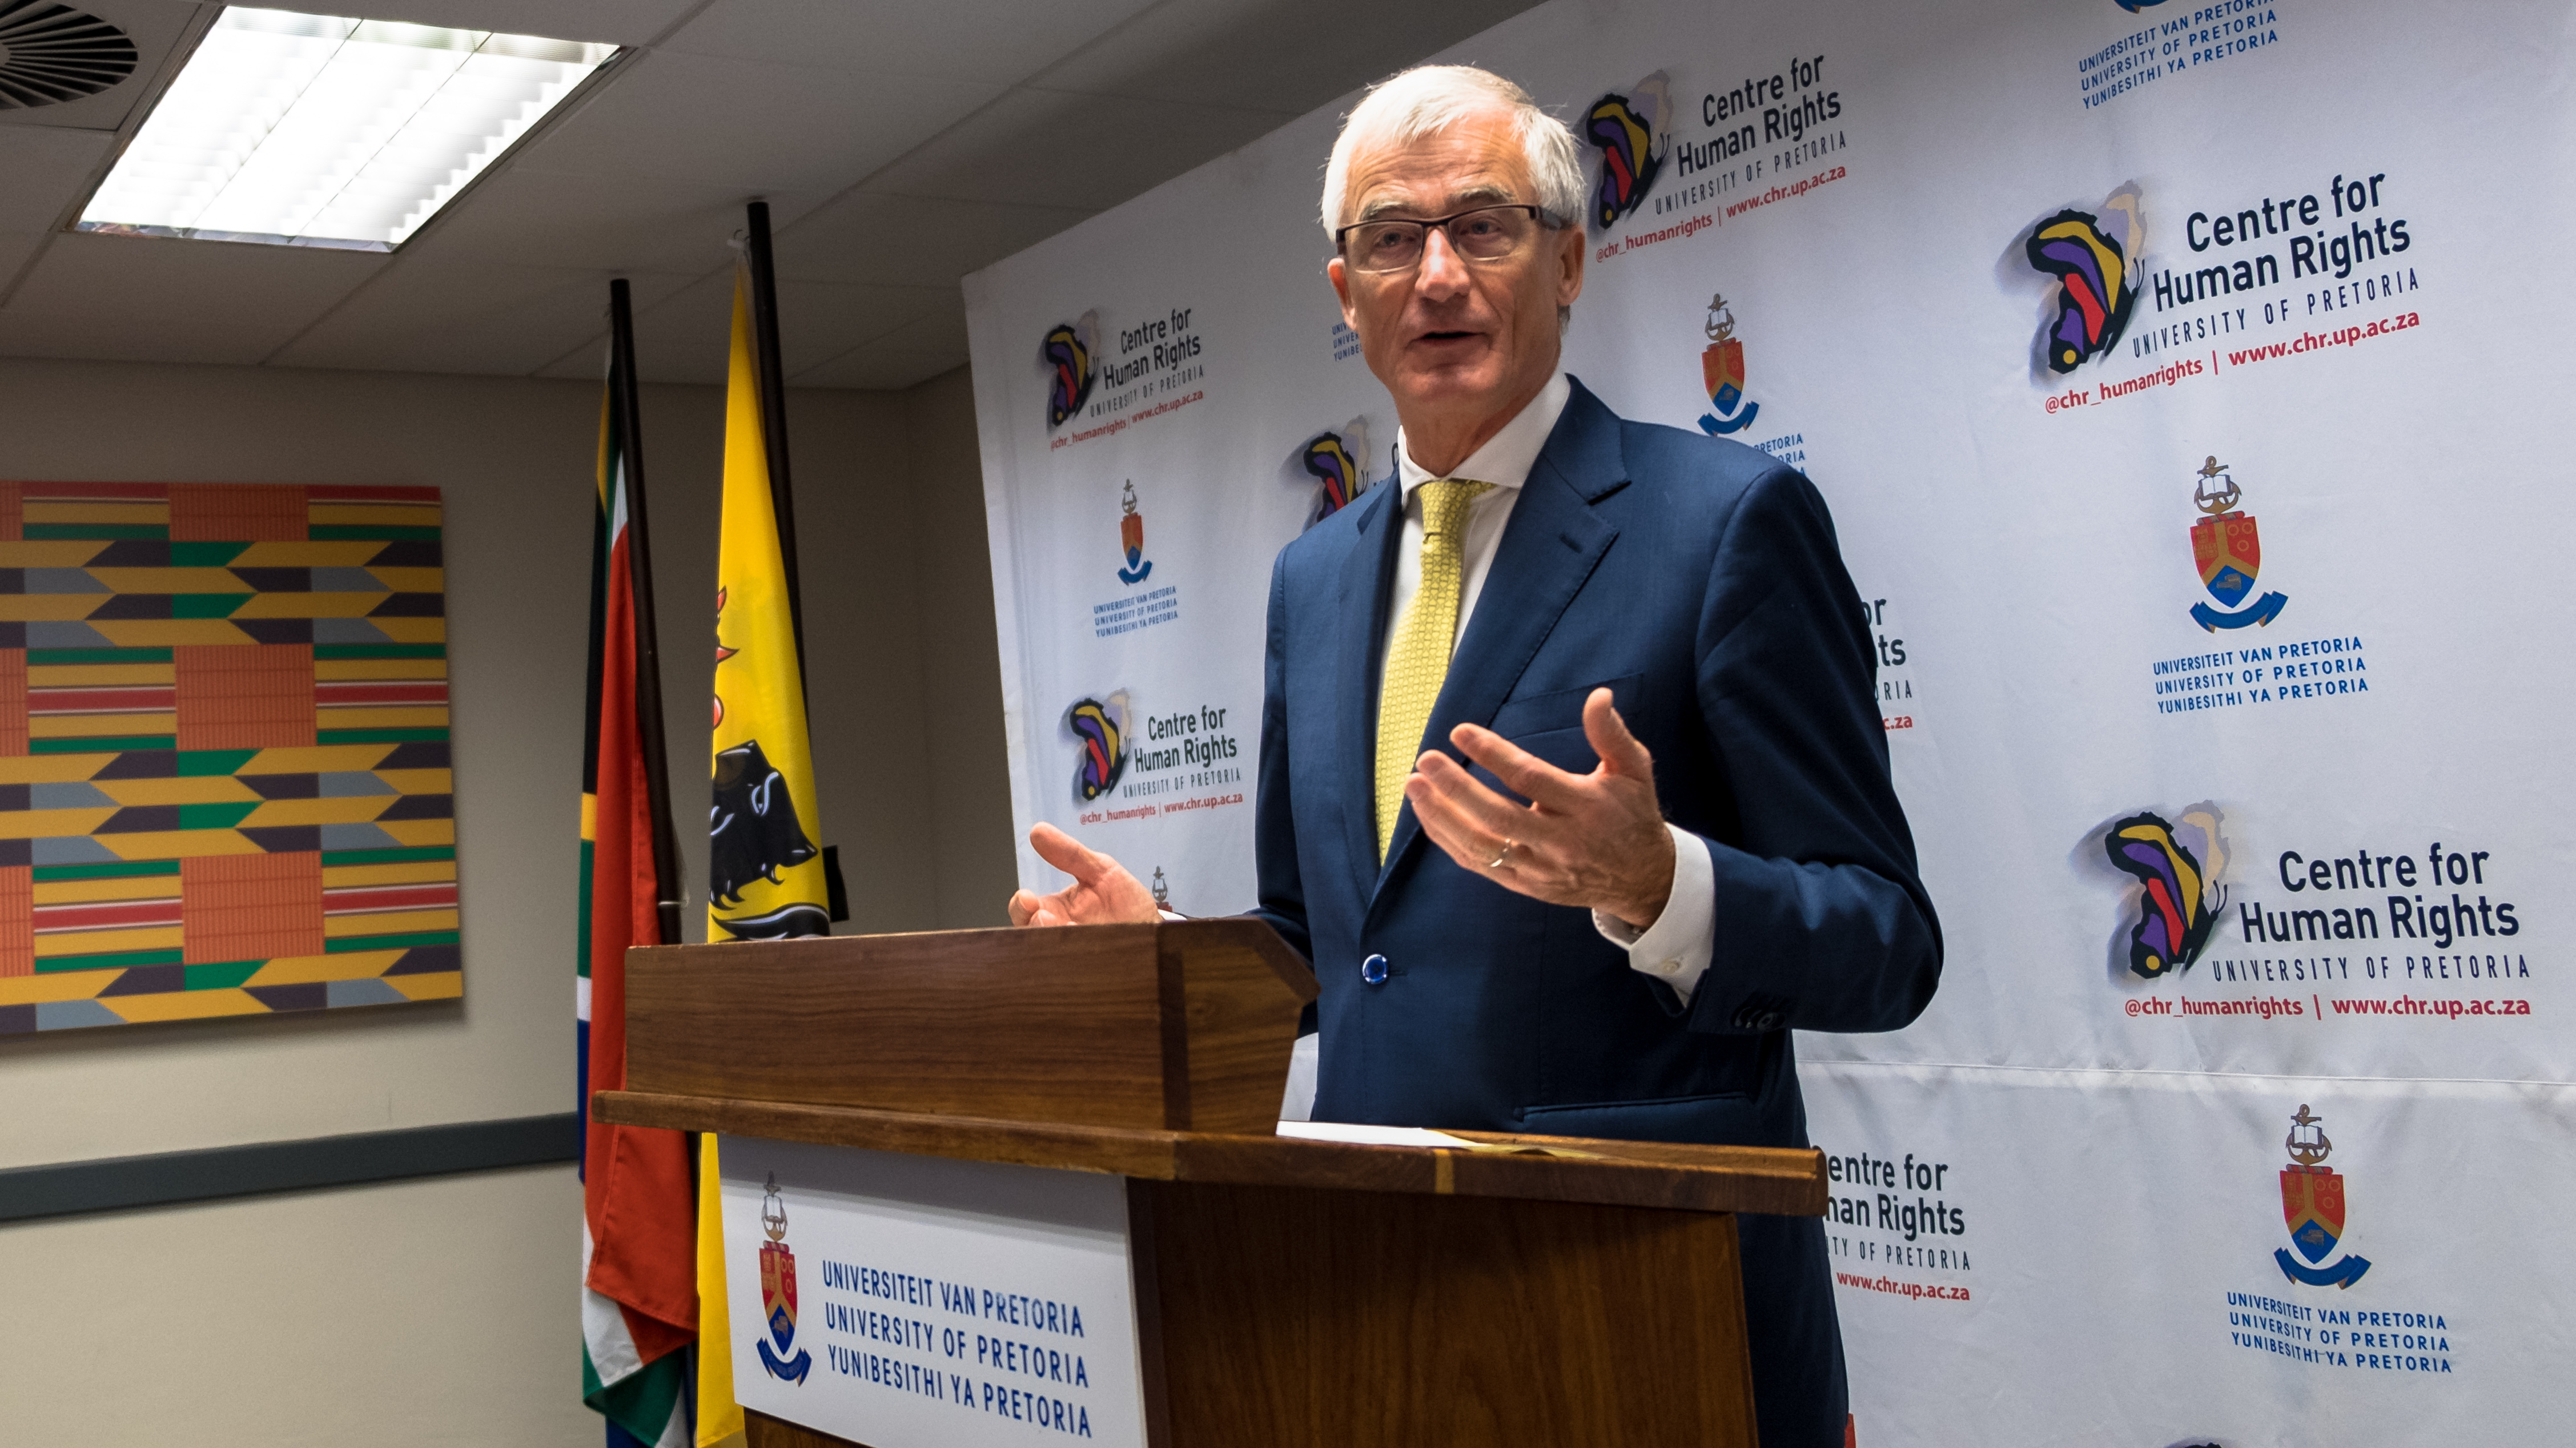 MP speech at Centre for Human Rights